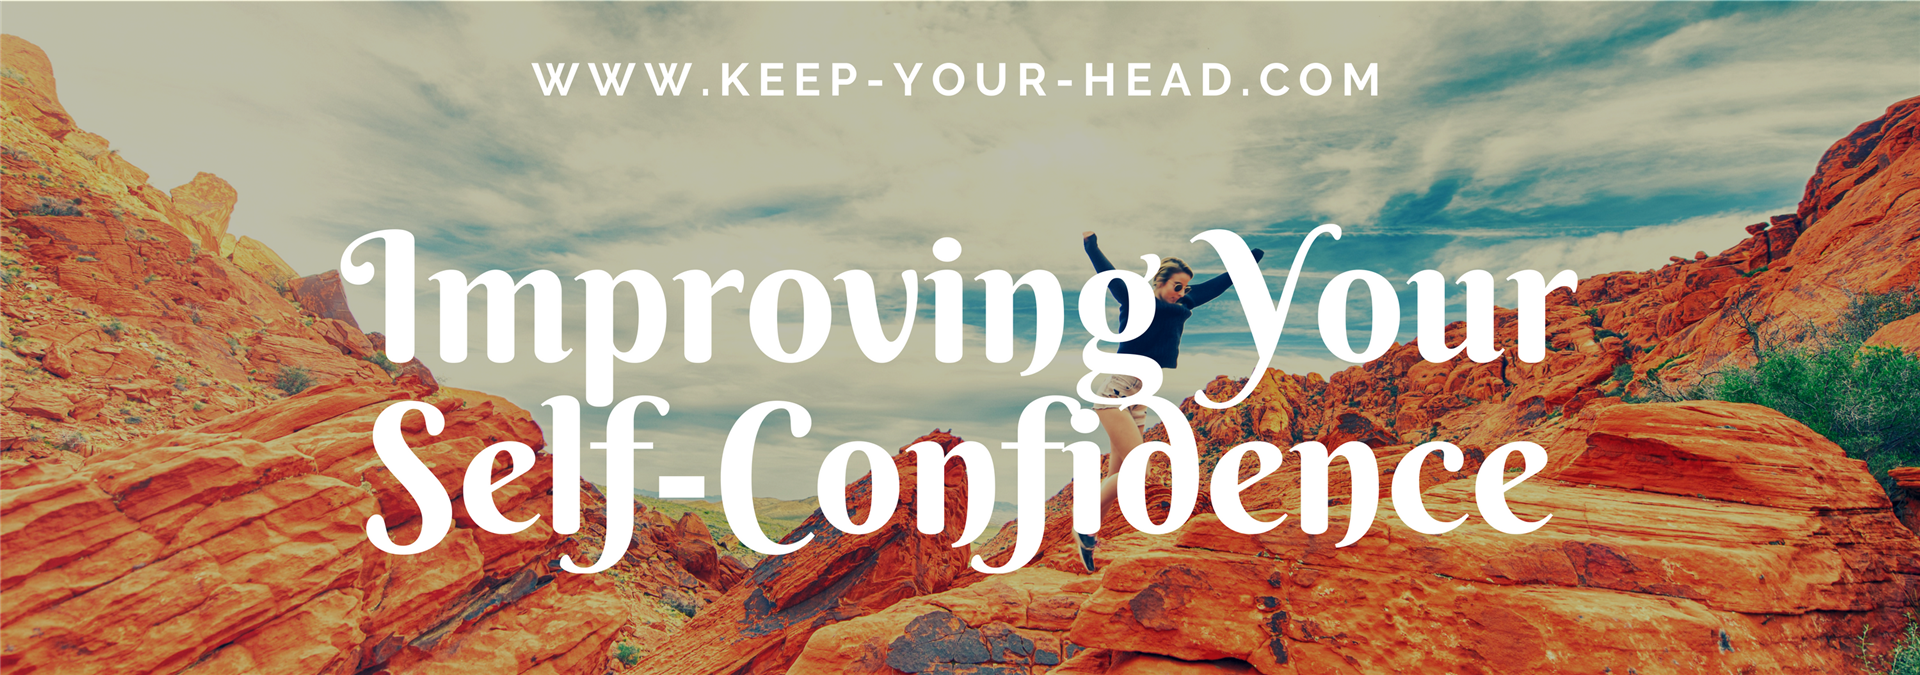 Improving your confidence blog banner